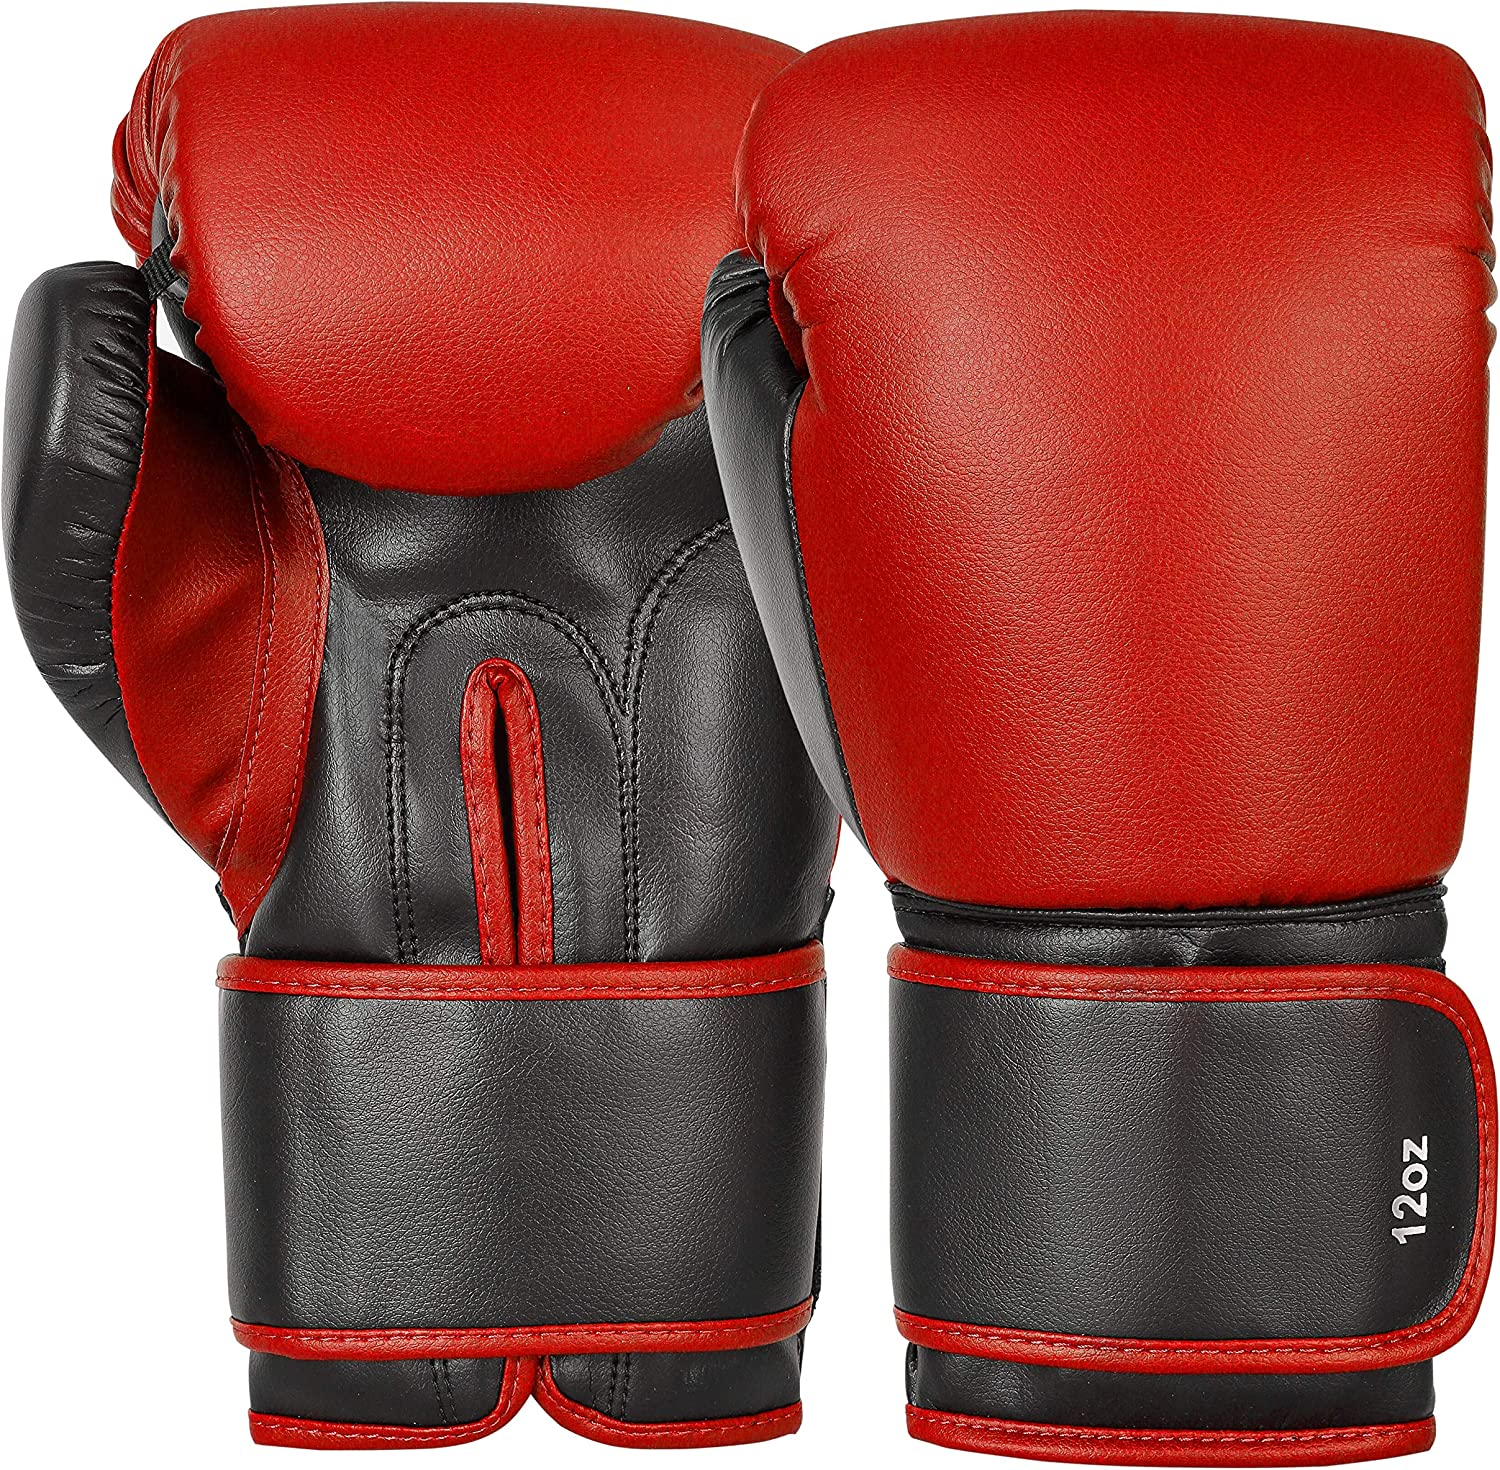 Pro Boxing Gloves for Men Women Premium Max 66% OFF Feel Home Ranking TOP11 with Gym